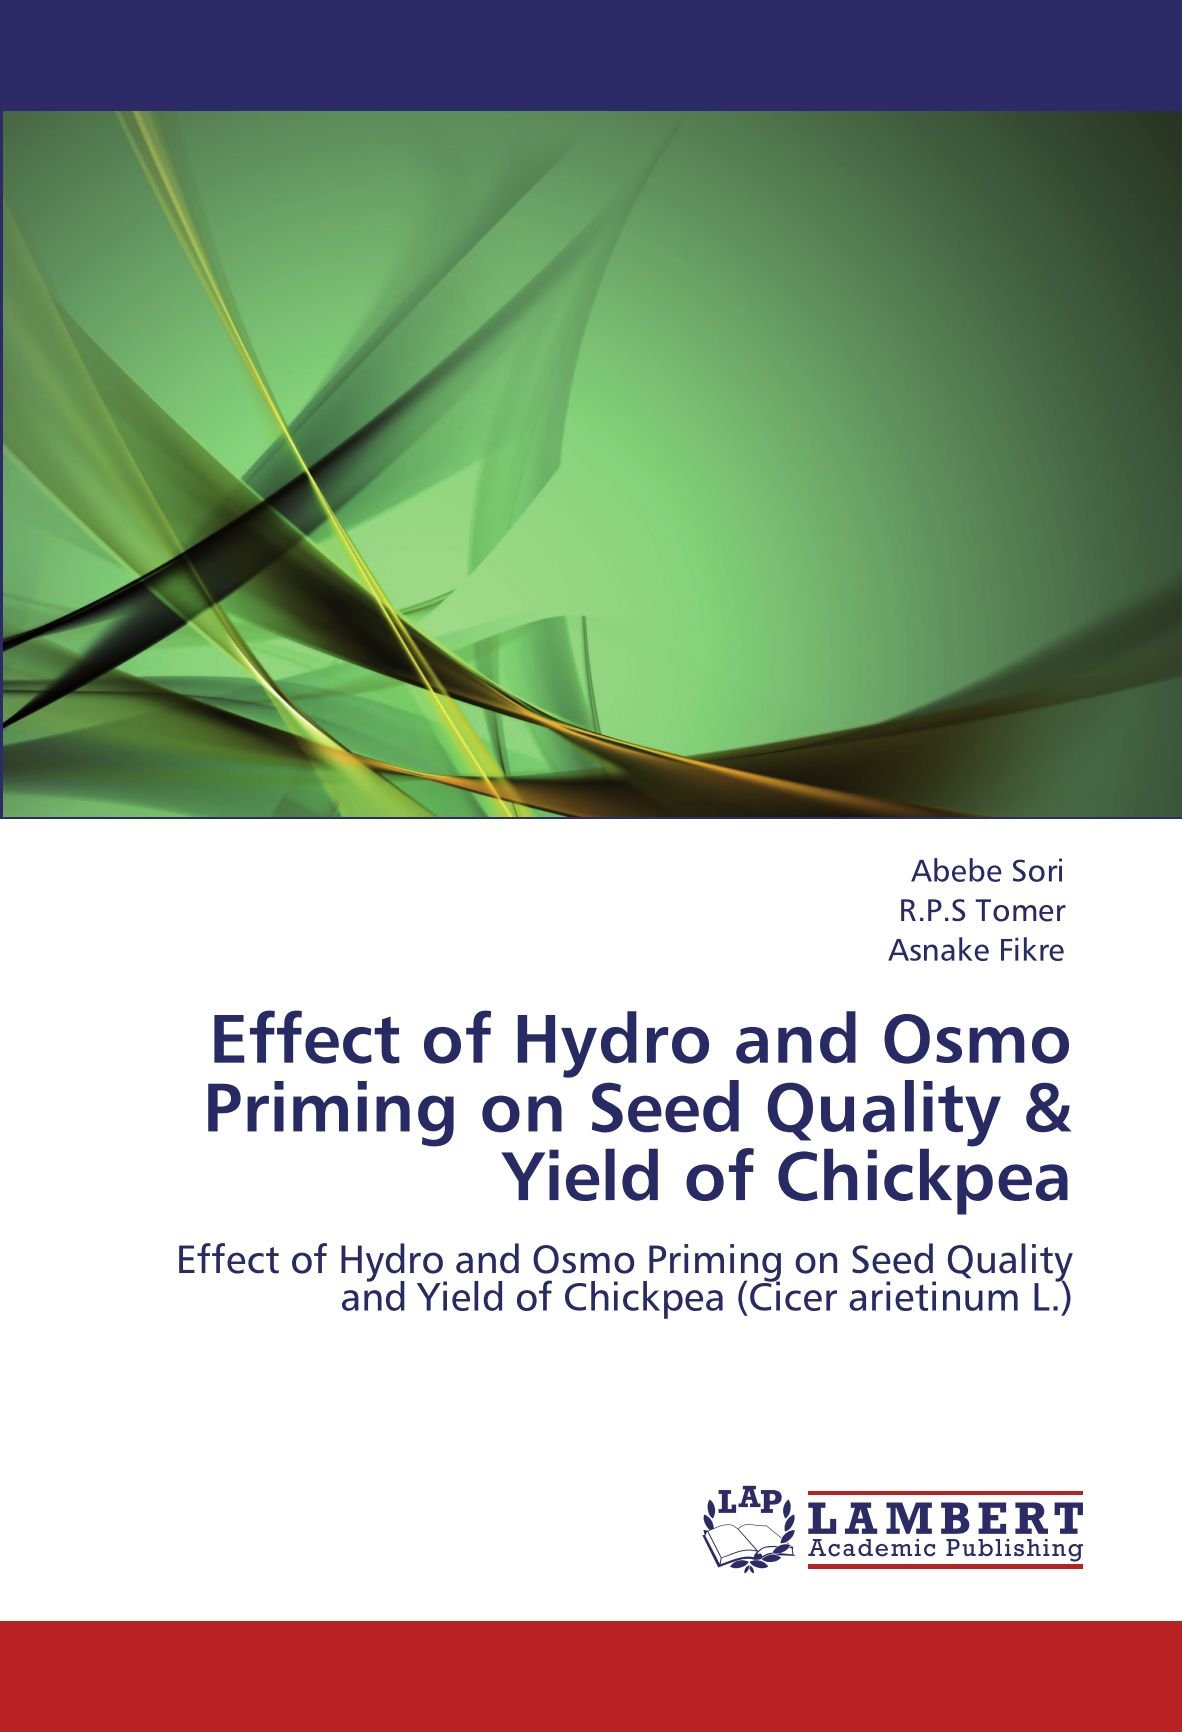 Download Effect of Hydro and Osmo Priming on Seed Quality & Yield of Chickpea: Effect of Hydro and Osmo Priming on Seed Quality and Yield of Chickpea (Cicer arietinum L.) PDF